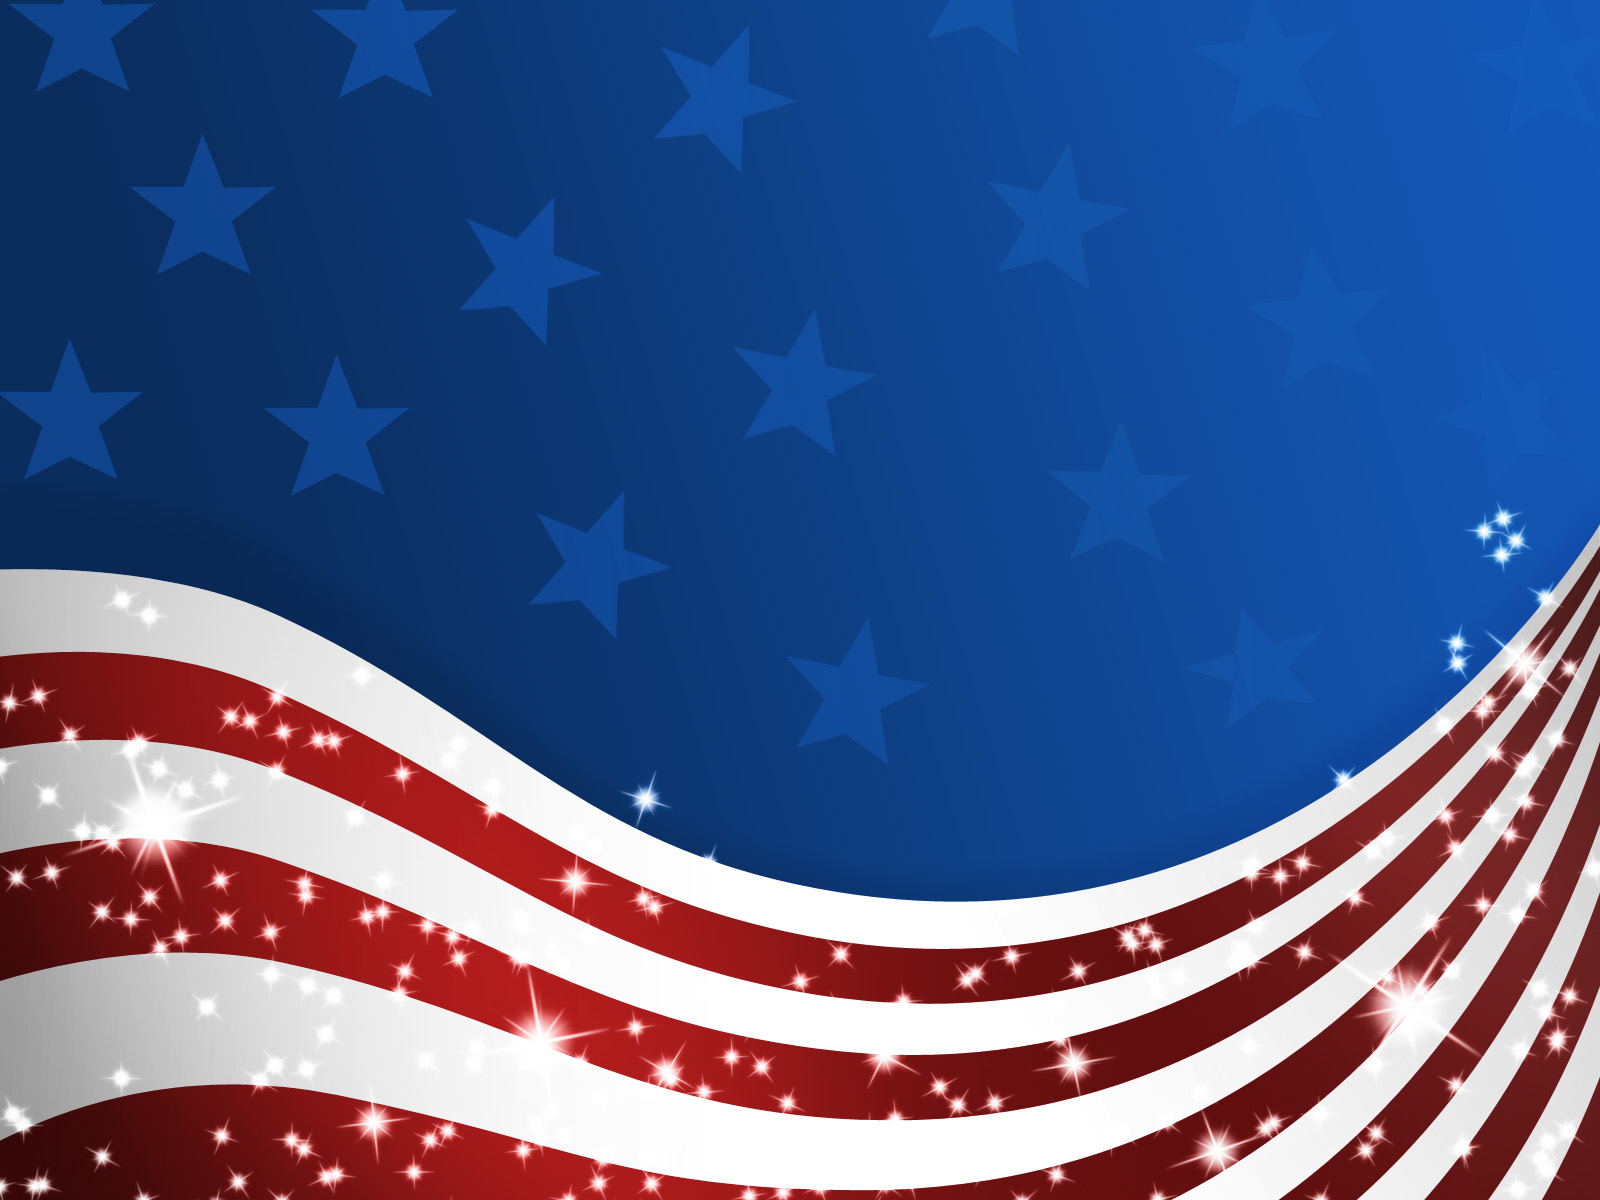 Free Patriotic Background Images, Download Free Clip Art.